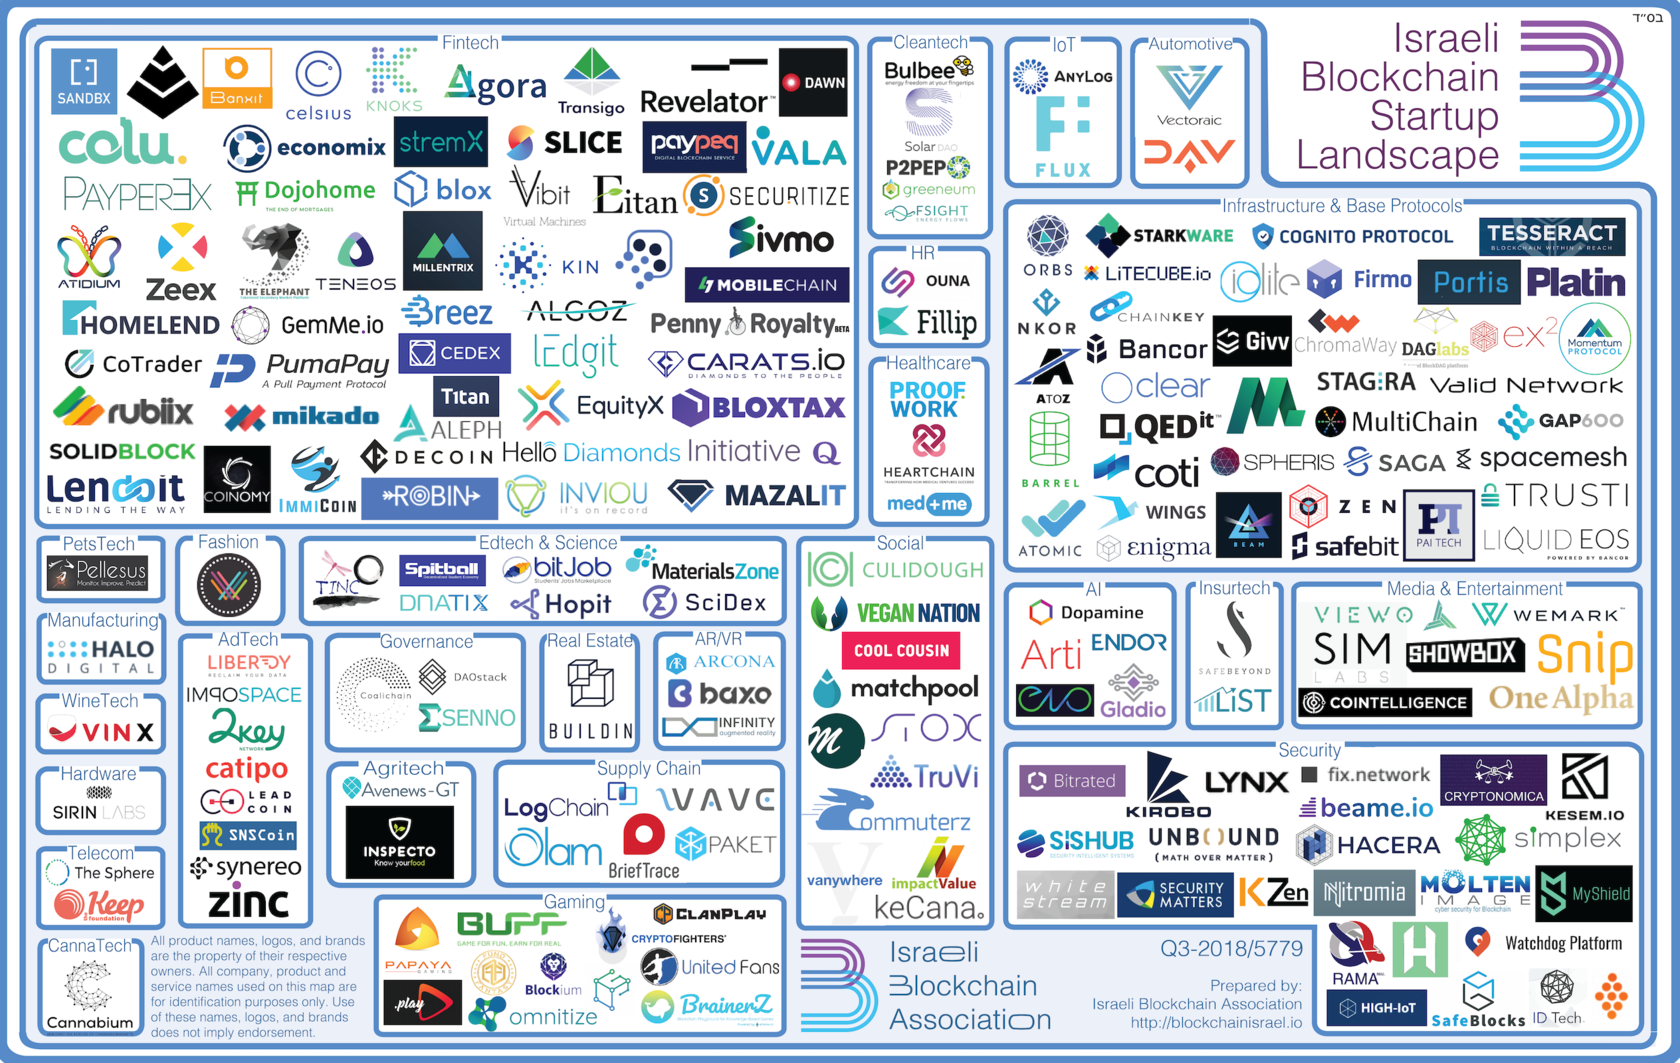 blockchain israel startup landscape israeli startups companies technology scene number q3 blockbuster association tripled israel21c industry infographic showing